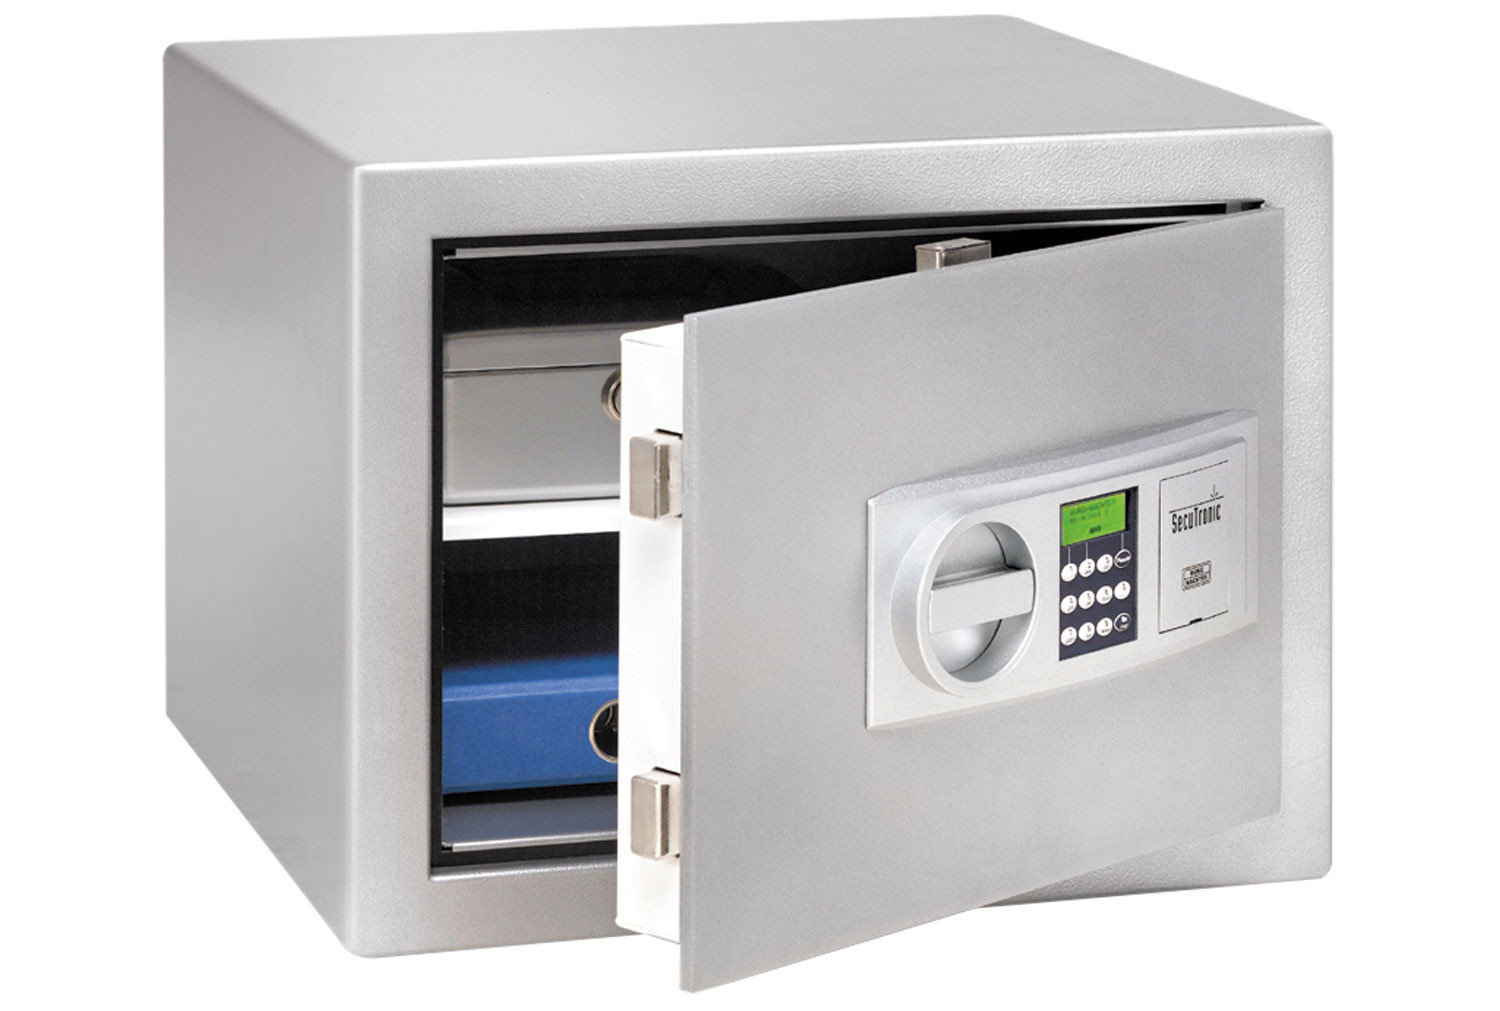 Burg Wachter Karat MT 24 N E Security Safe With Electronic Lock (26ltrs)